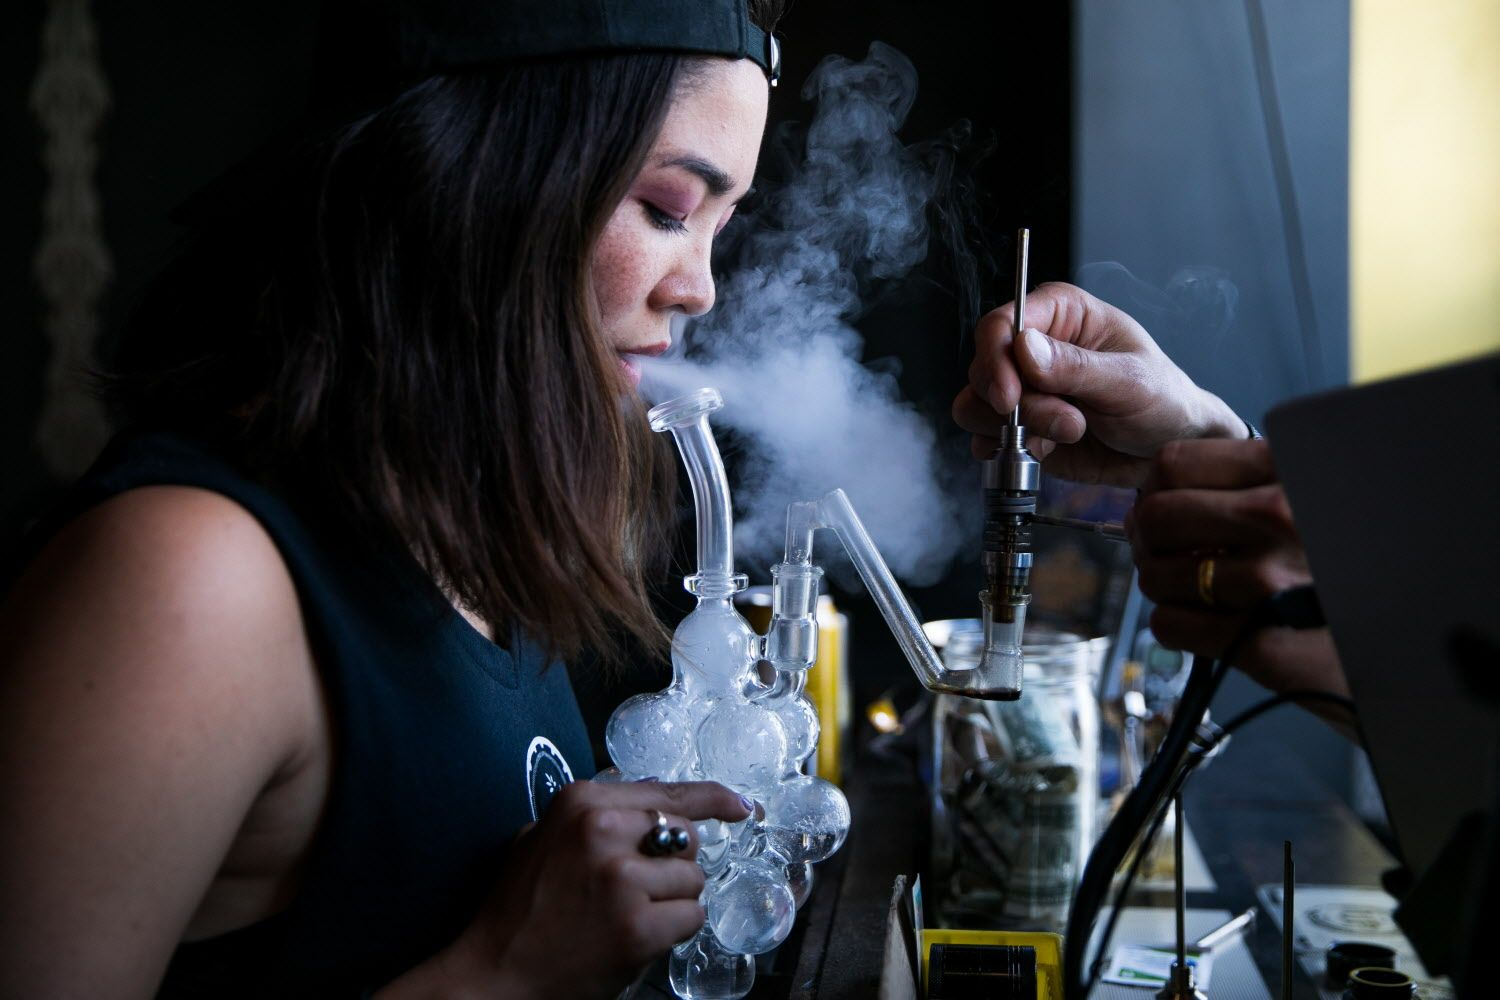 Midori Mel blows vapor after using the dab rig at Urban Pharm in San Francisco, Calif. Saturday, August 5, 2017.